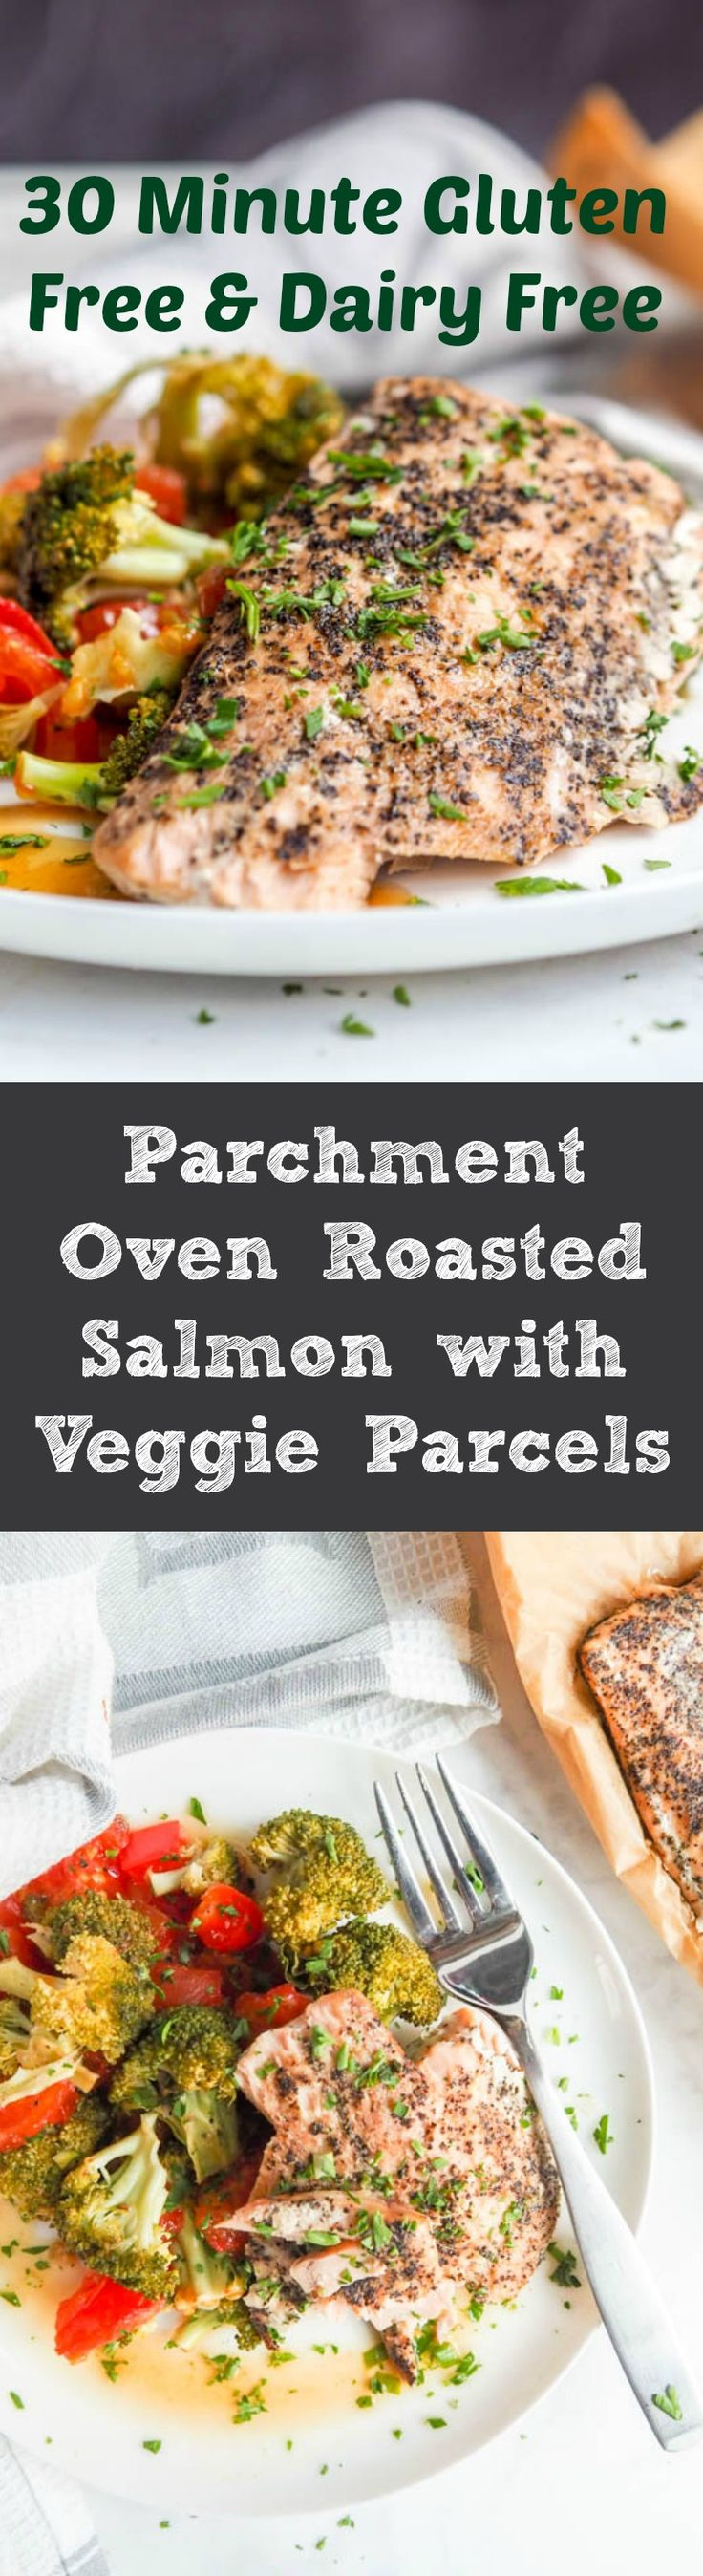 Dinner doesn't get simpler than parchment packet oven roasted salmon served with broccoli, red pepper and tomato parcels. Gluten-Free, Dairy-Free, High Protein and Low Carb. A healthy dinner with minimal prep for those busy night. | avocadopesto.com